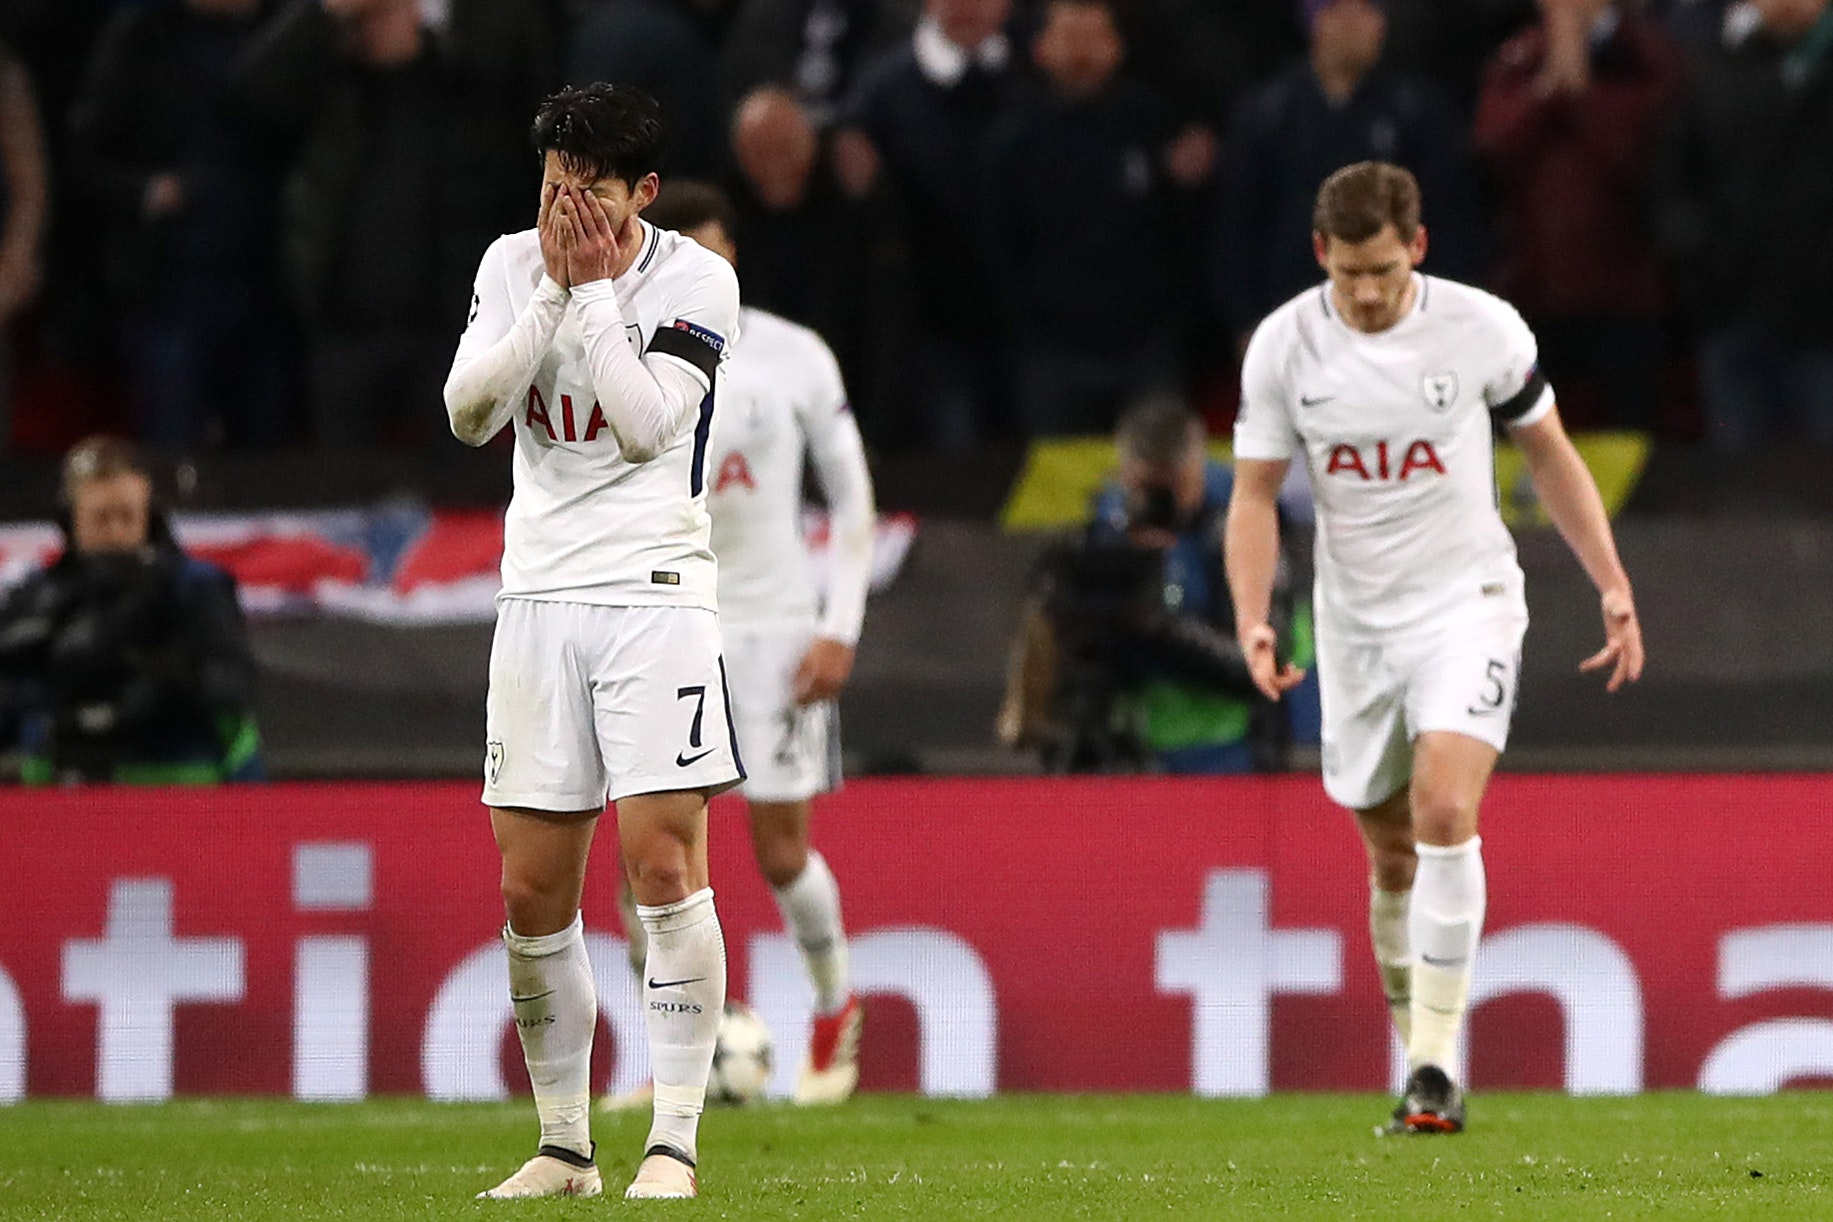 Son Heung-Min was devastated at Tottenham's Champions League defeat (John Walton/PA)